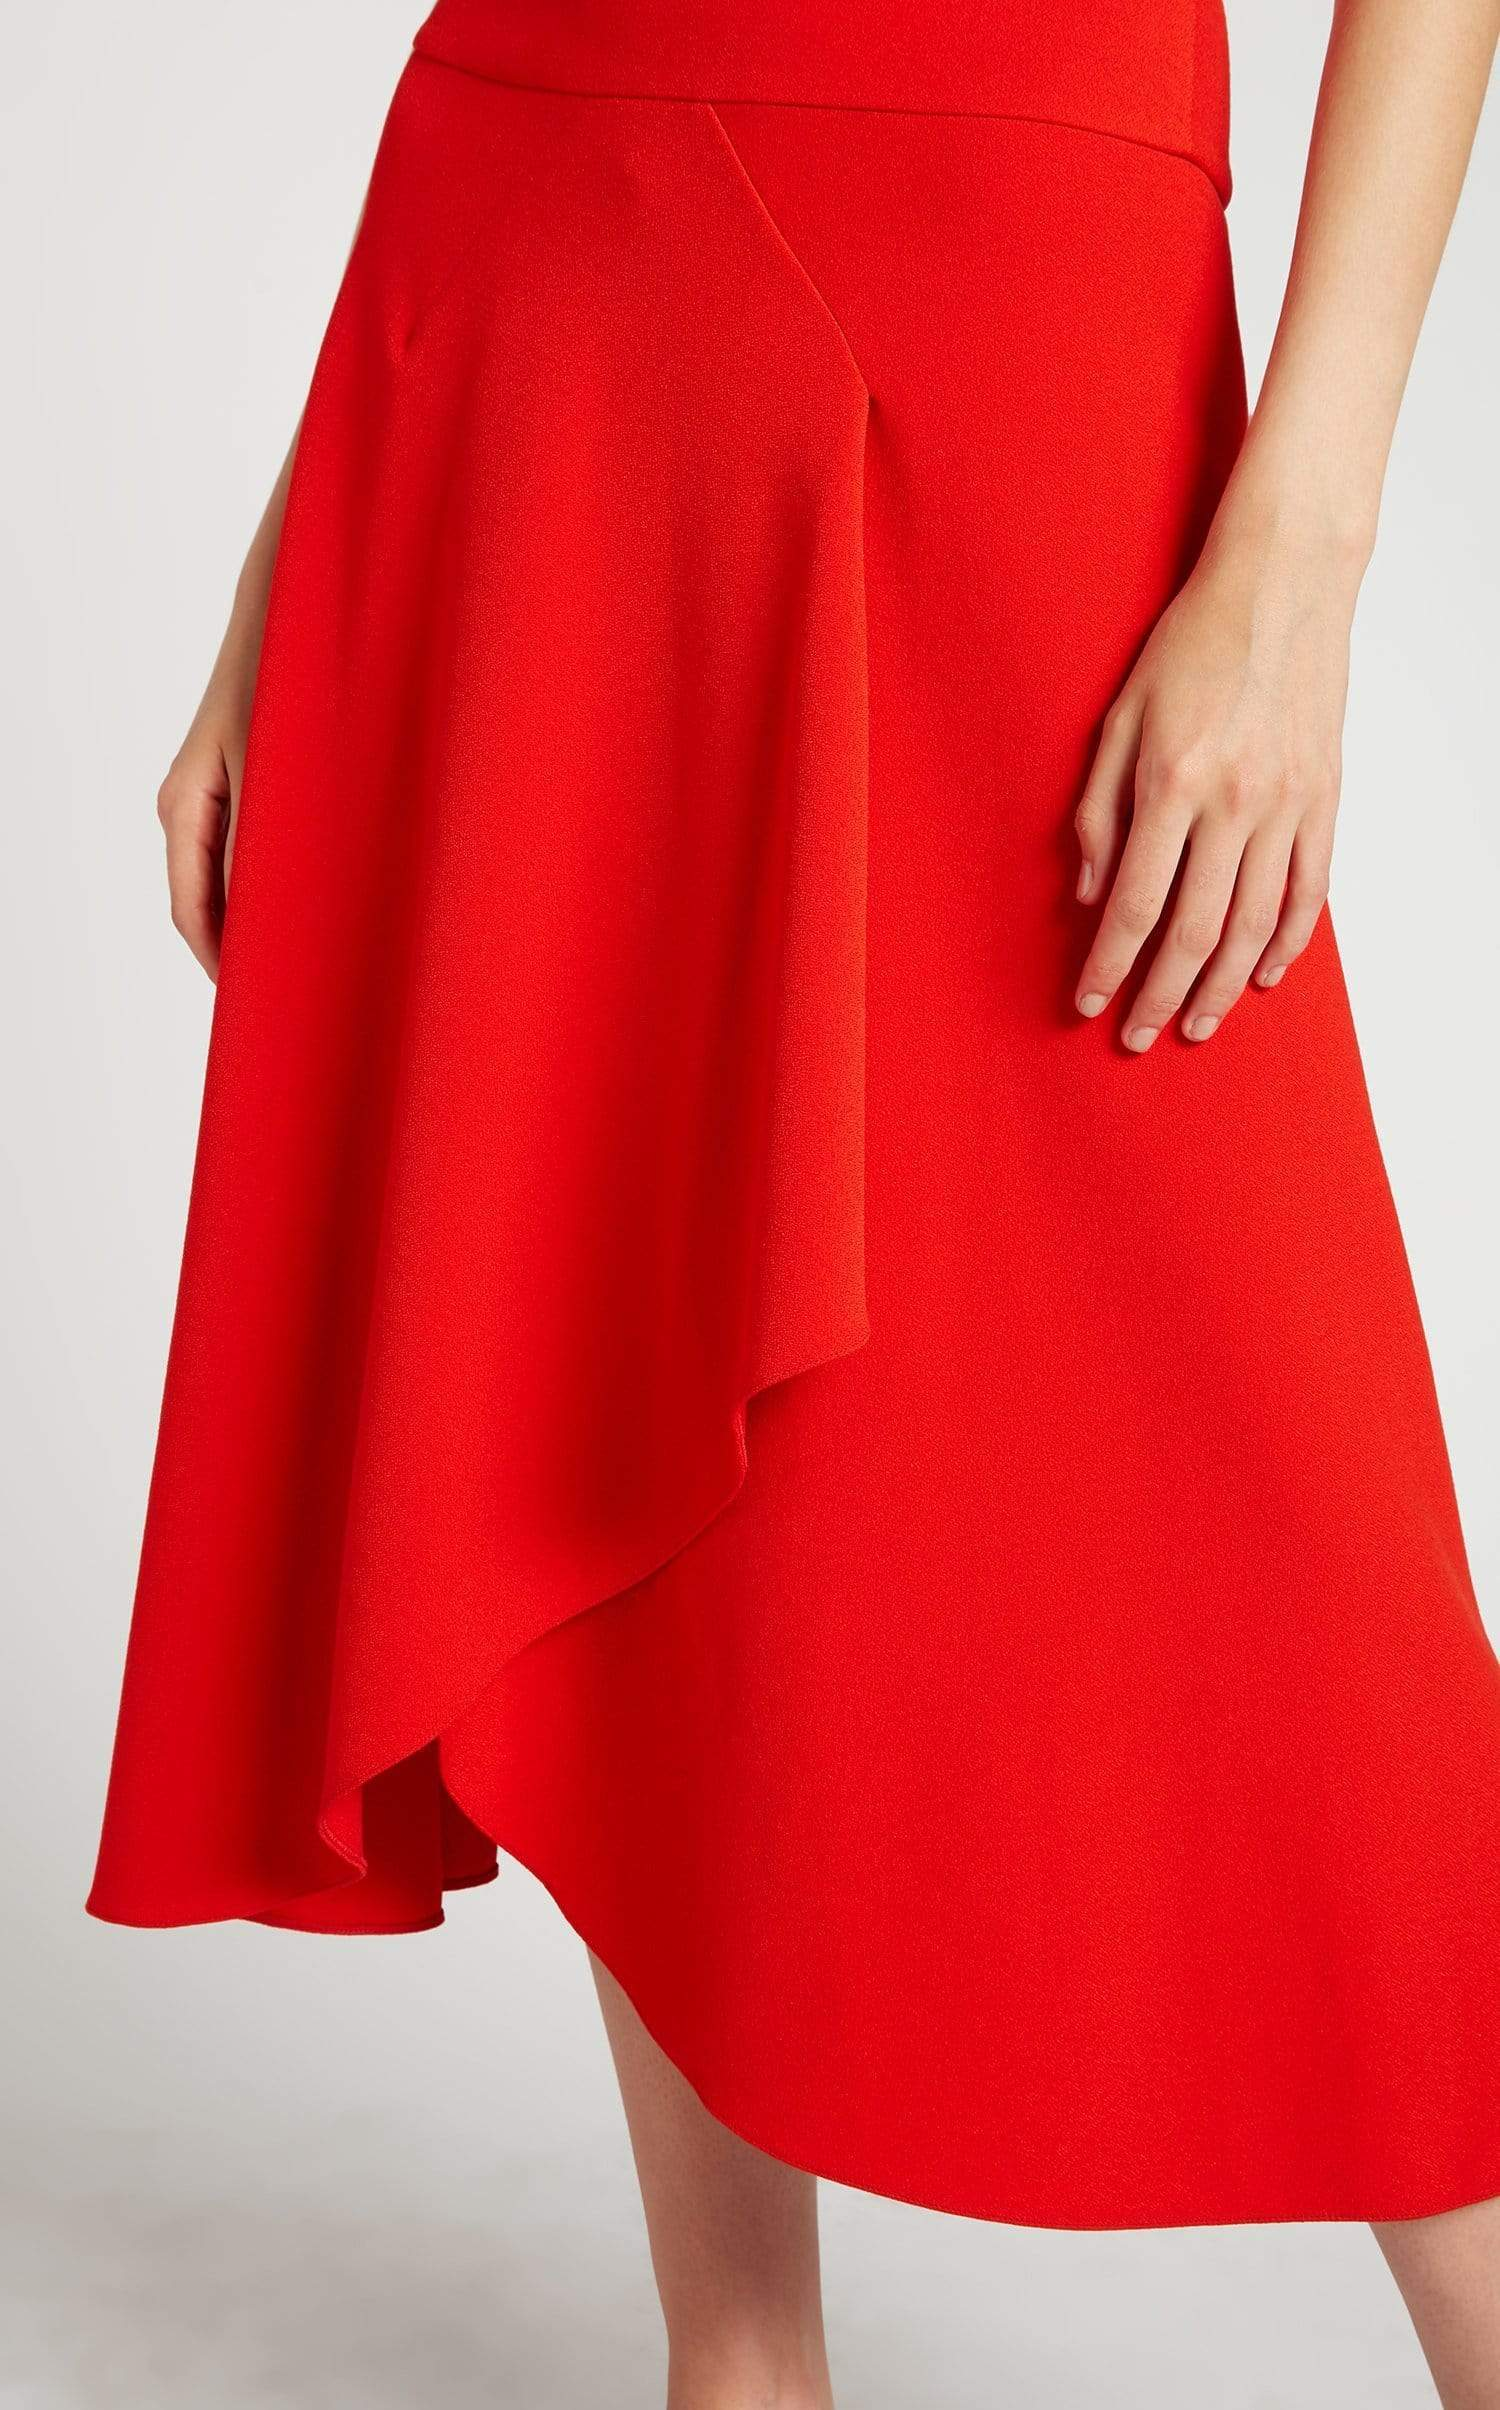 Jackson Dress In Poppy Red from Roland Mouret